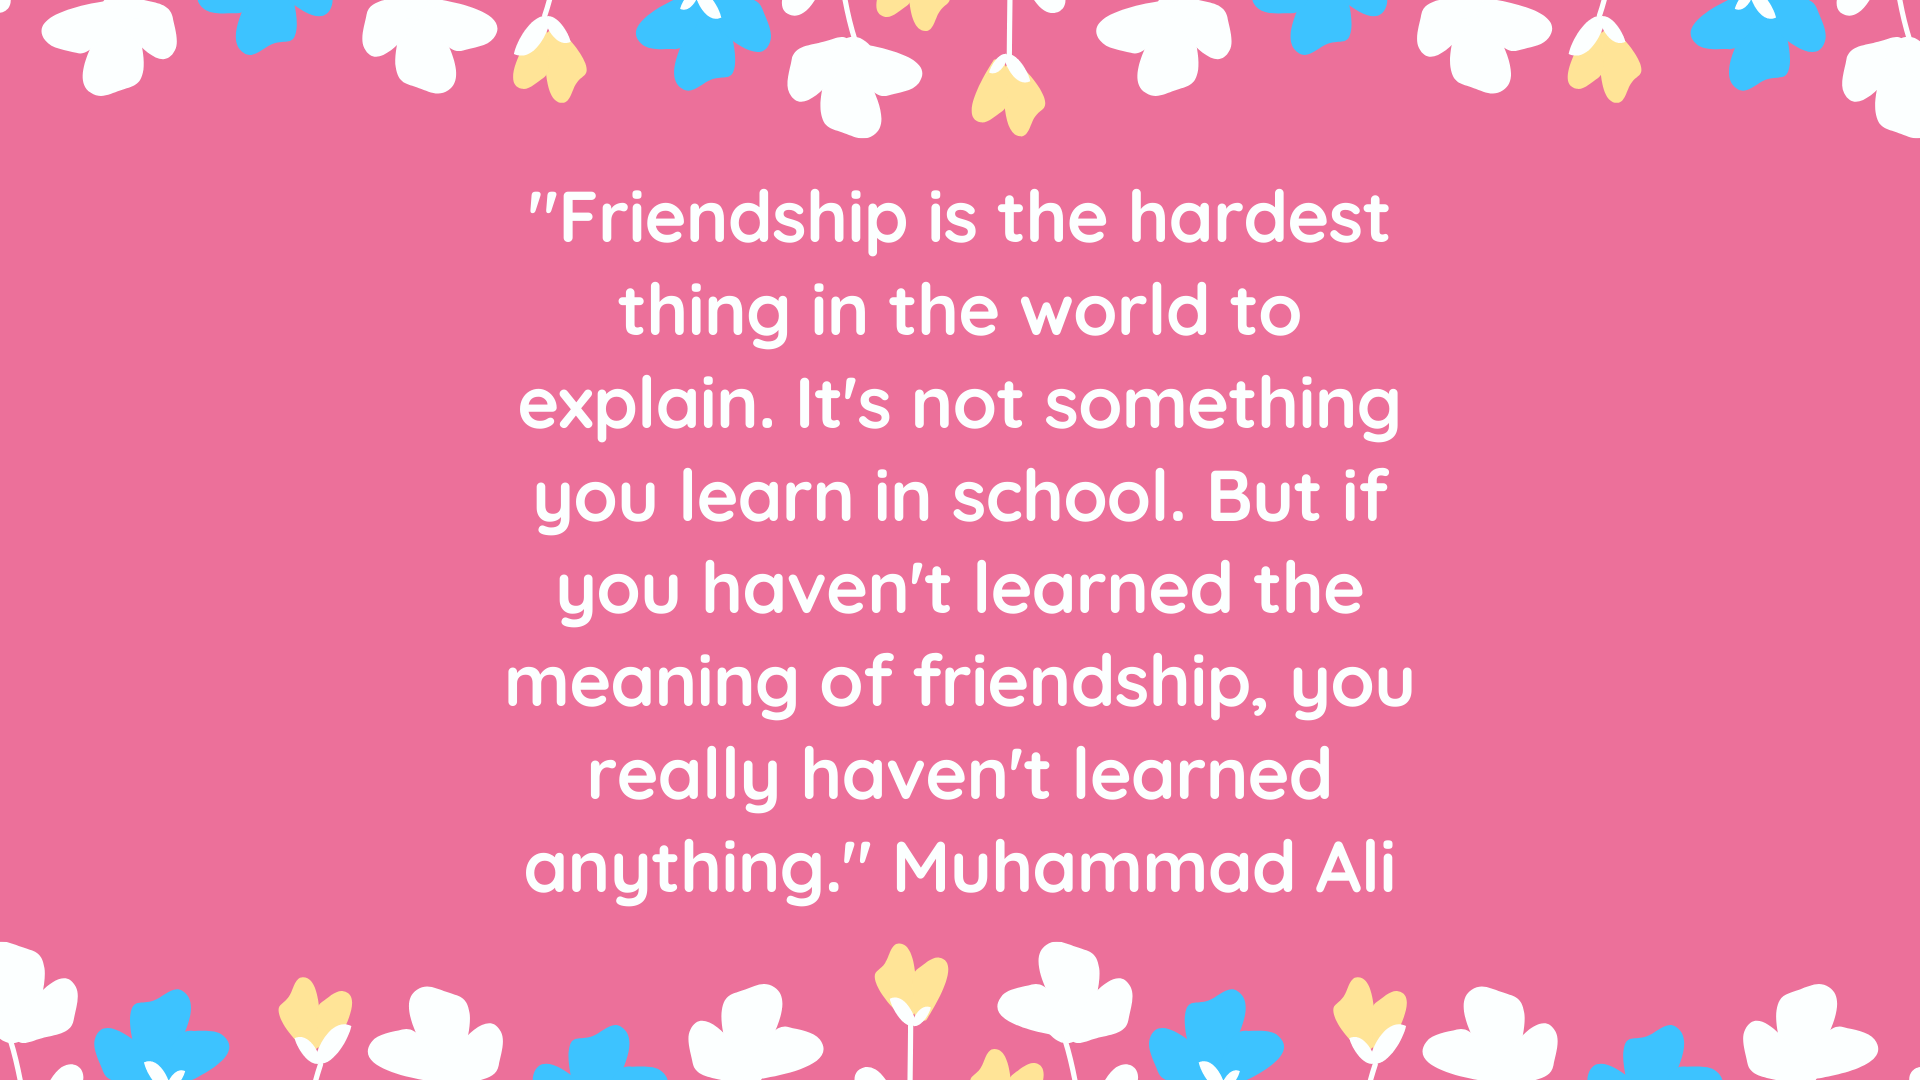 """Friendship is the hardest thing in the world to explain. It's not something you learn in school. But if you haven't learned the meaning of friendship, you really haven't learned anything."" Muhammad Ali"